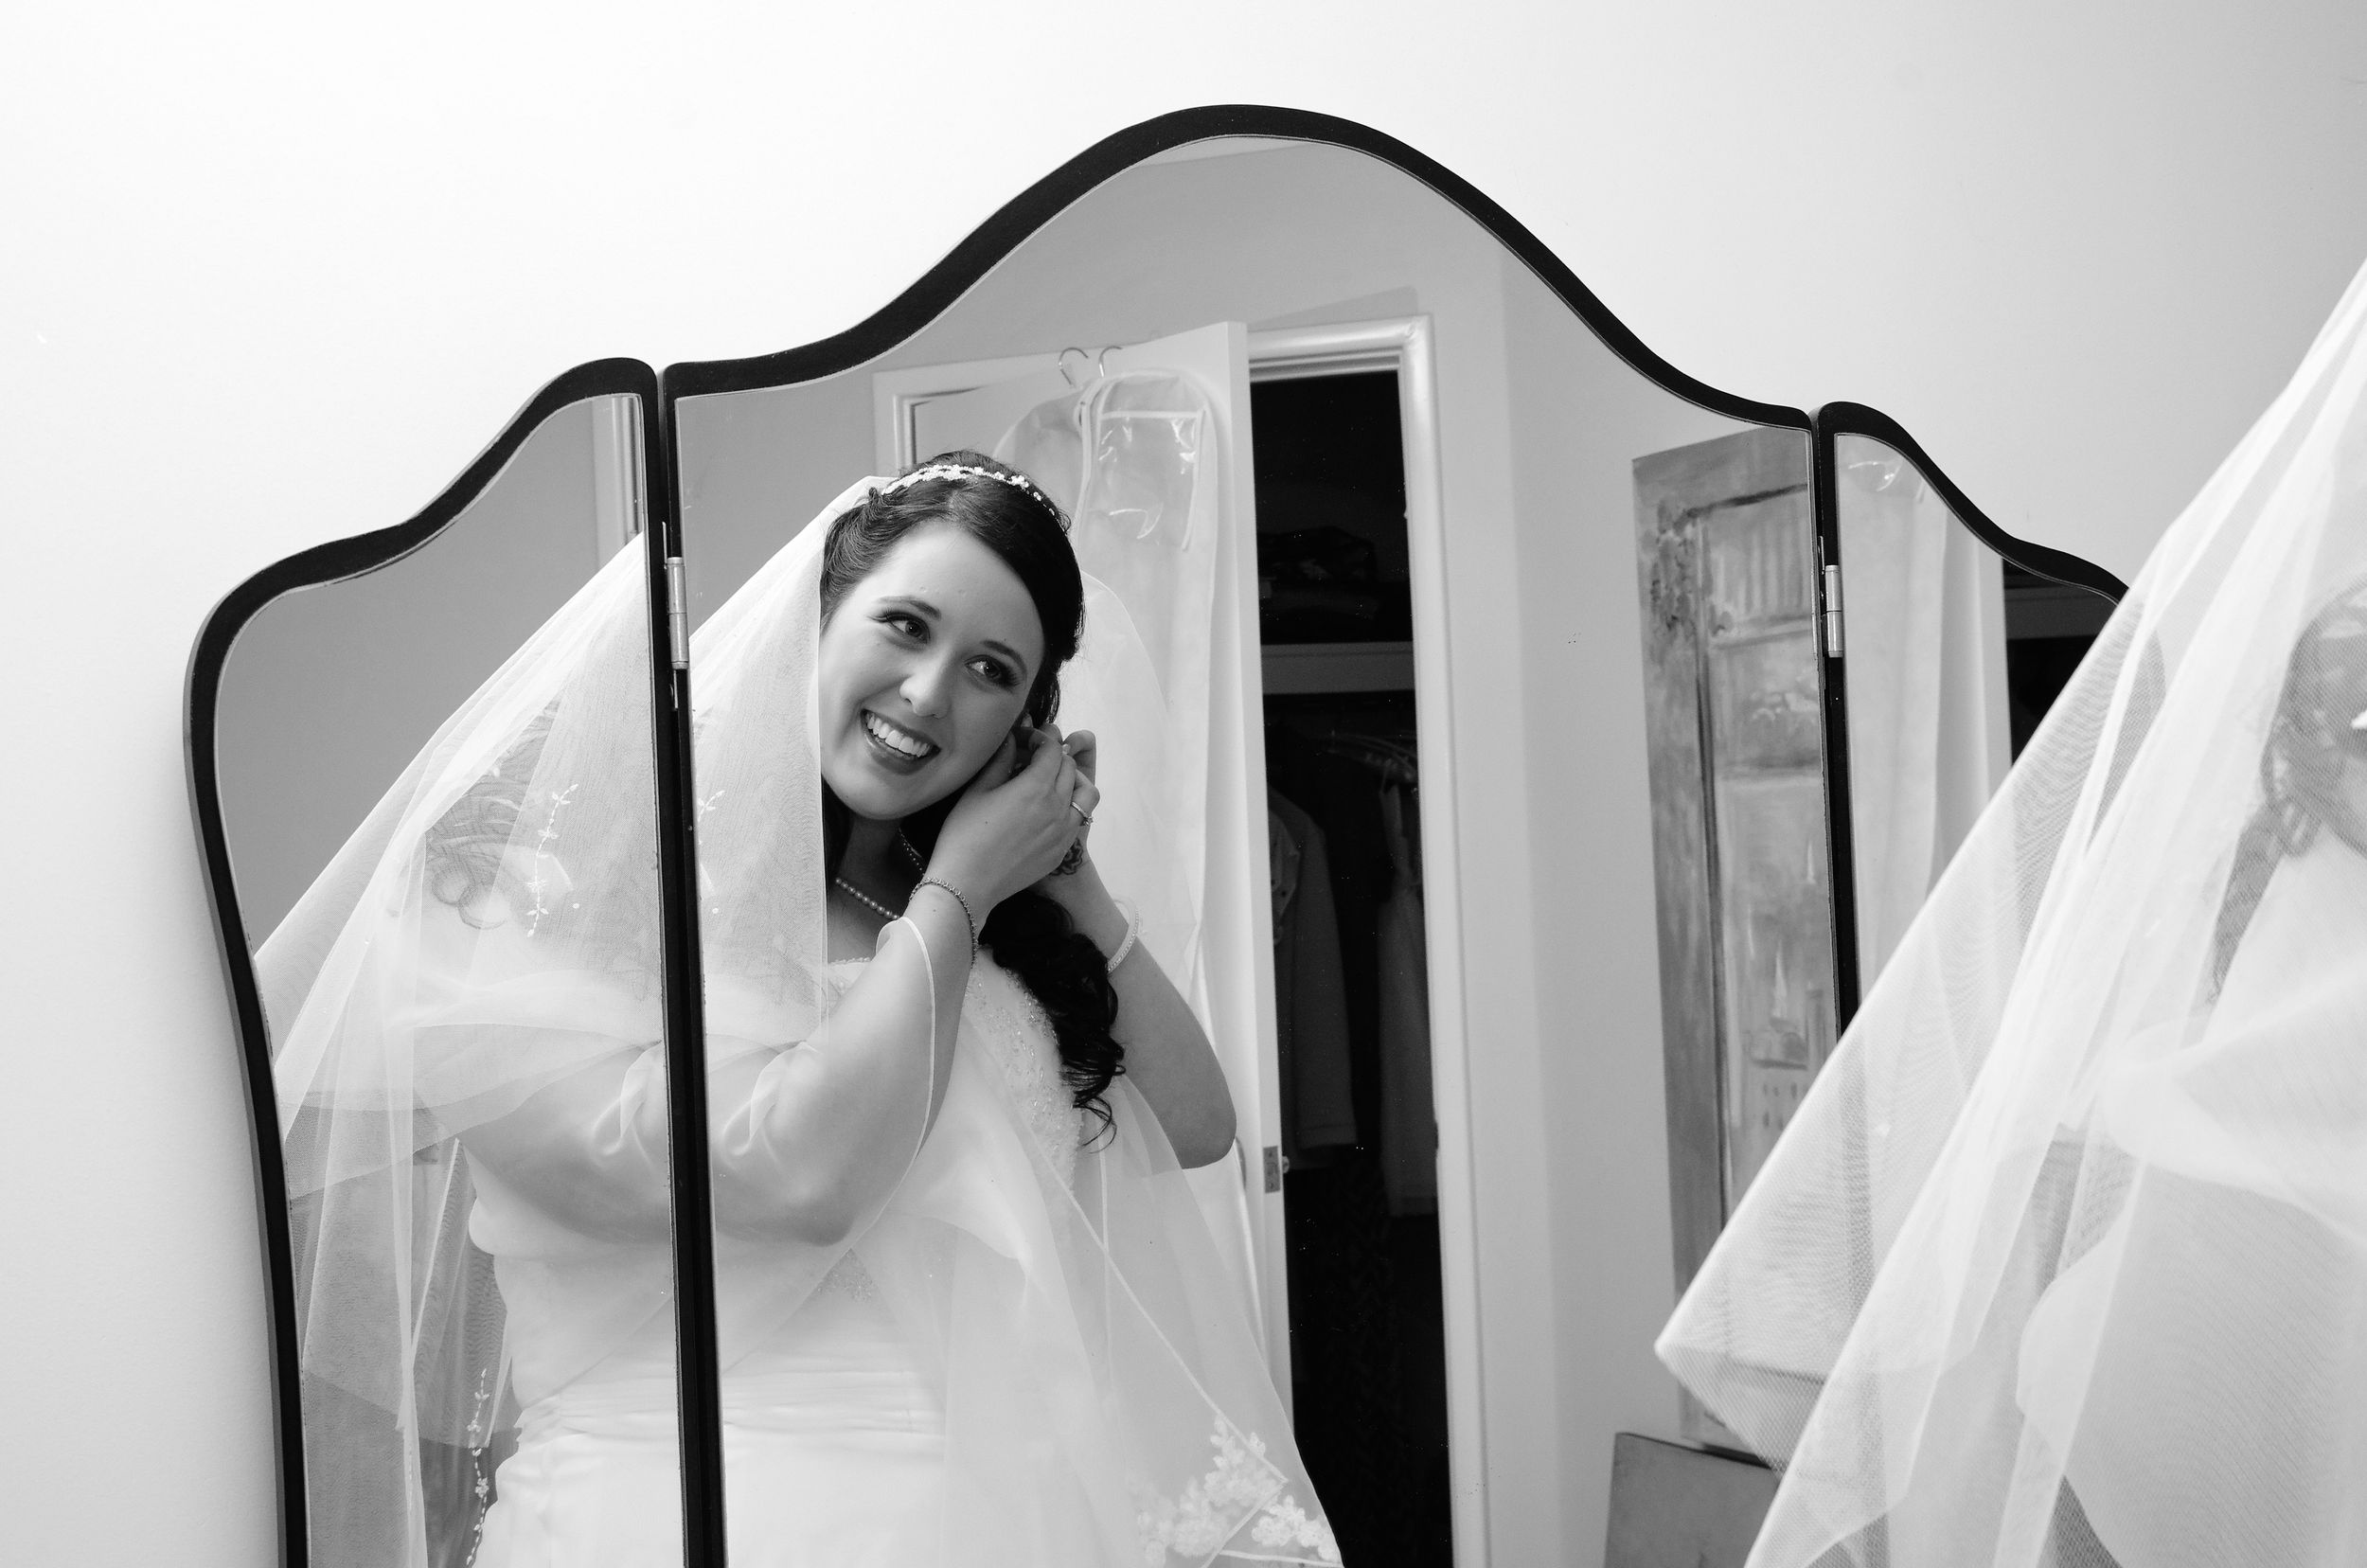 bride getting ready looking at her reflection in mirror